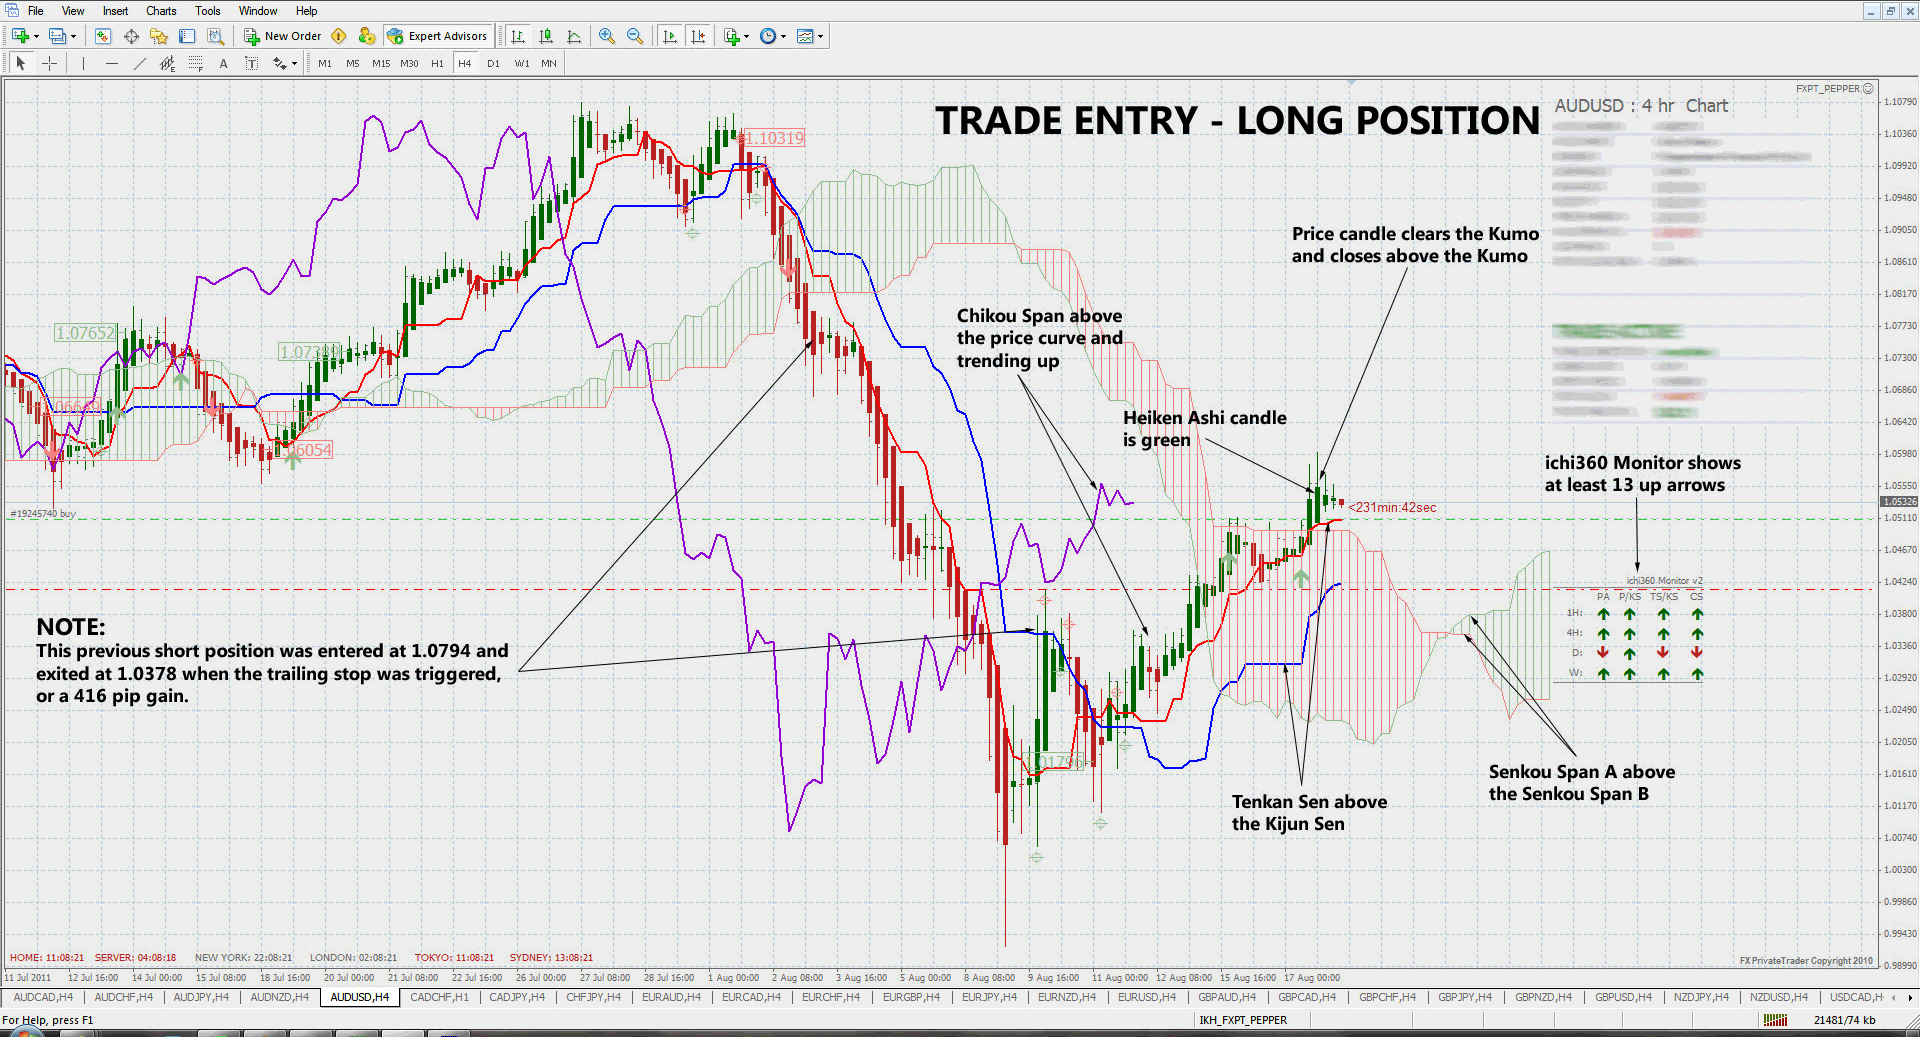 Advanced candlesticks and ichimoku strategies for forex trading forex trading systems made easy